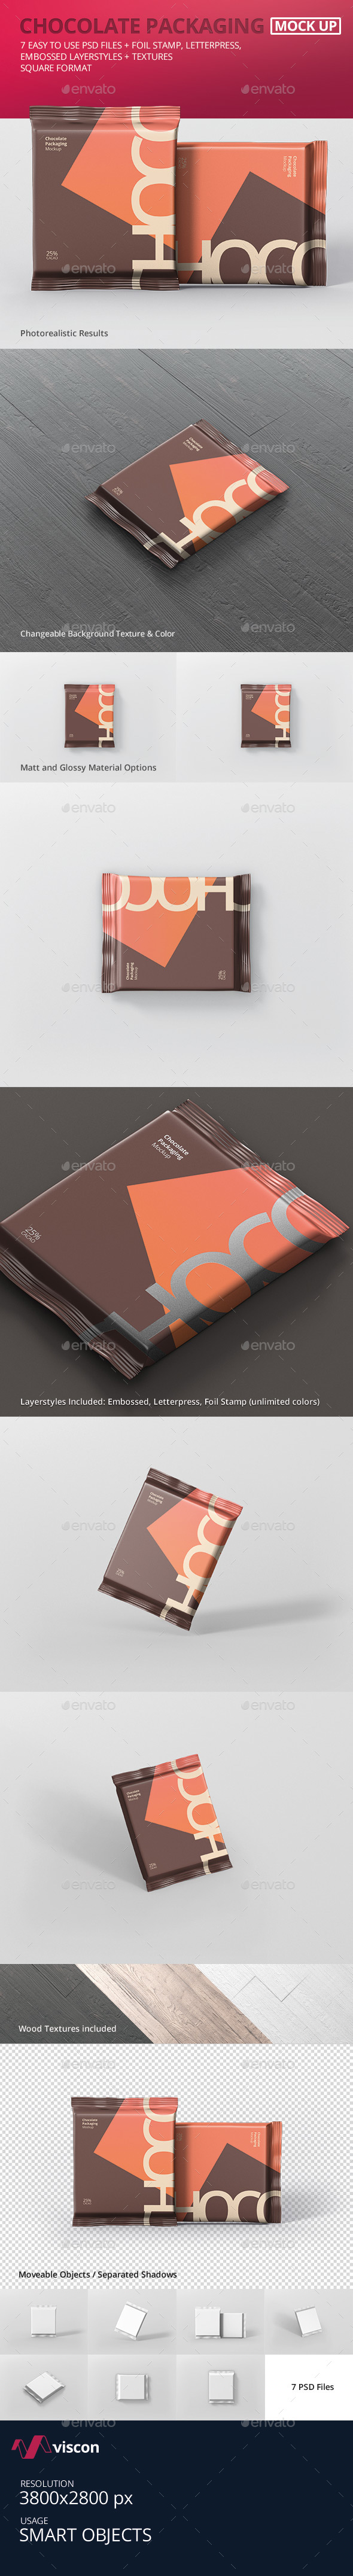 Foil Chocolate Packaging Mockup - Square Size - Food and Drink Packaging